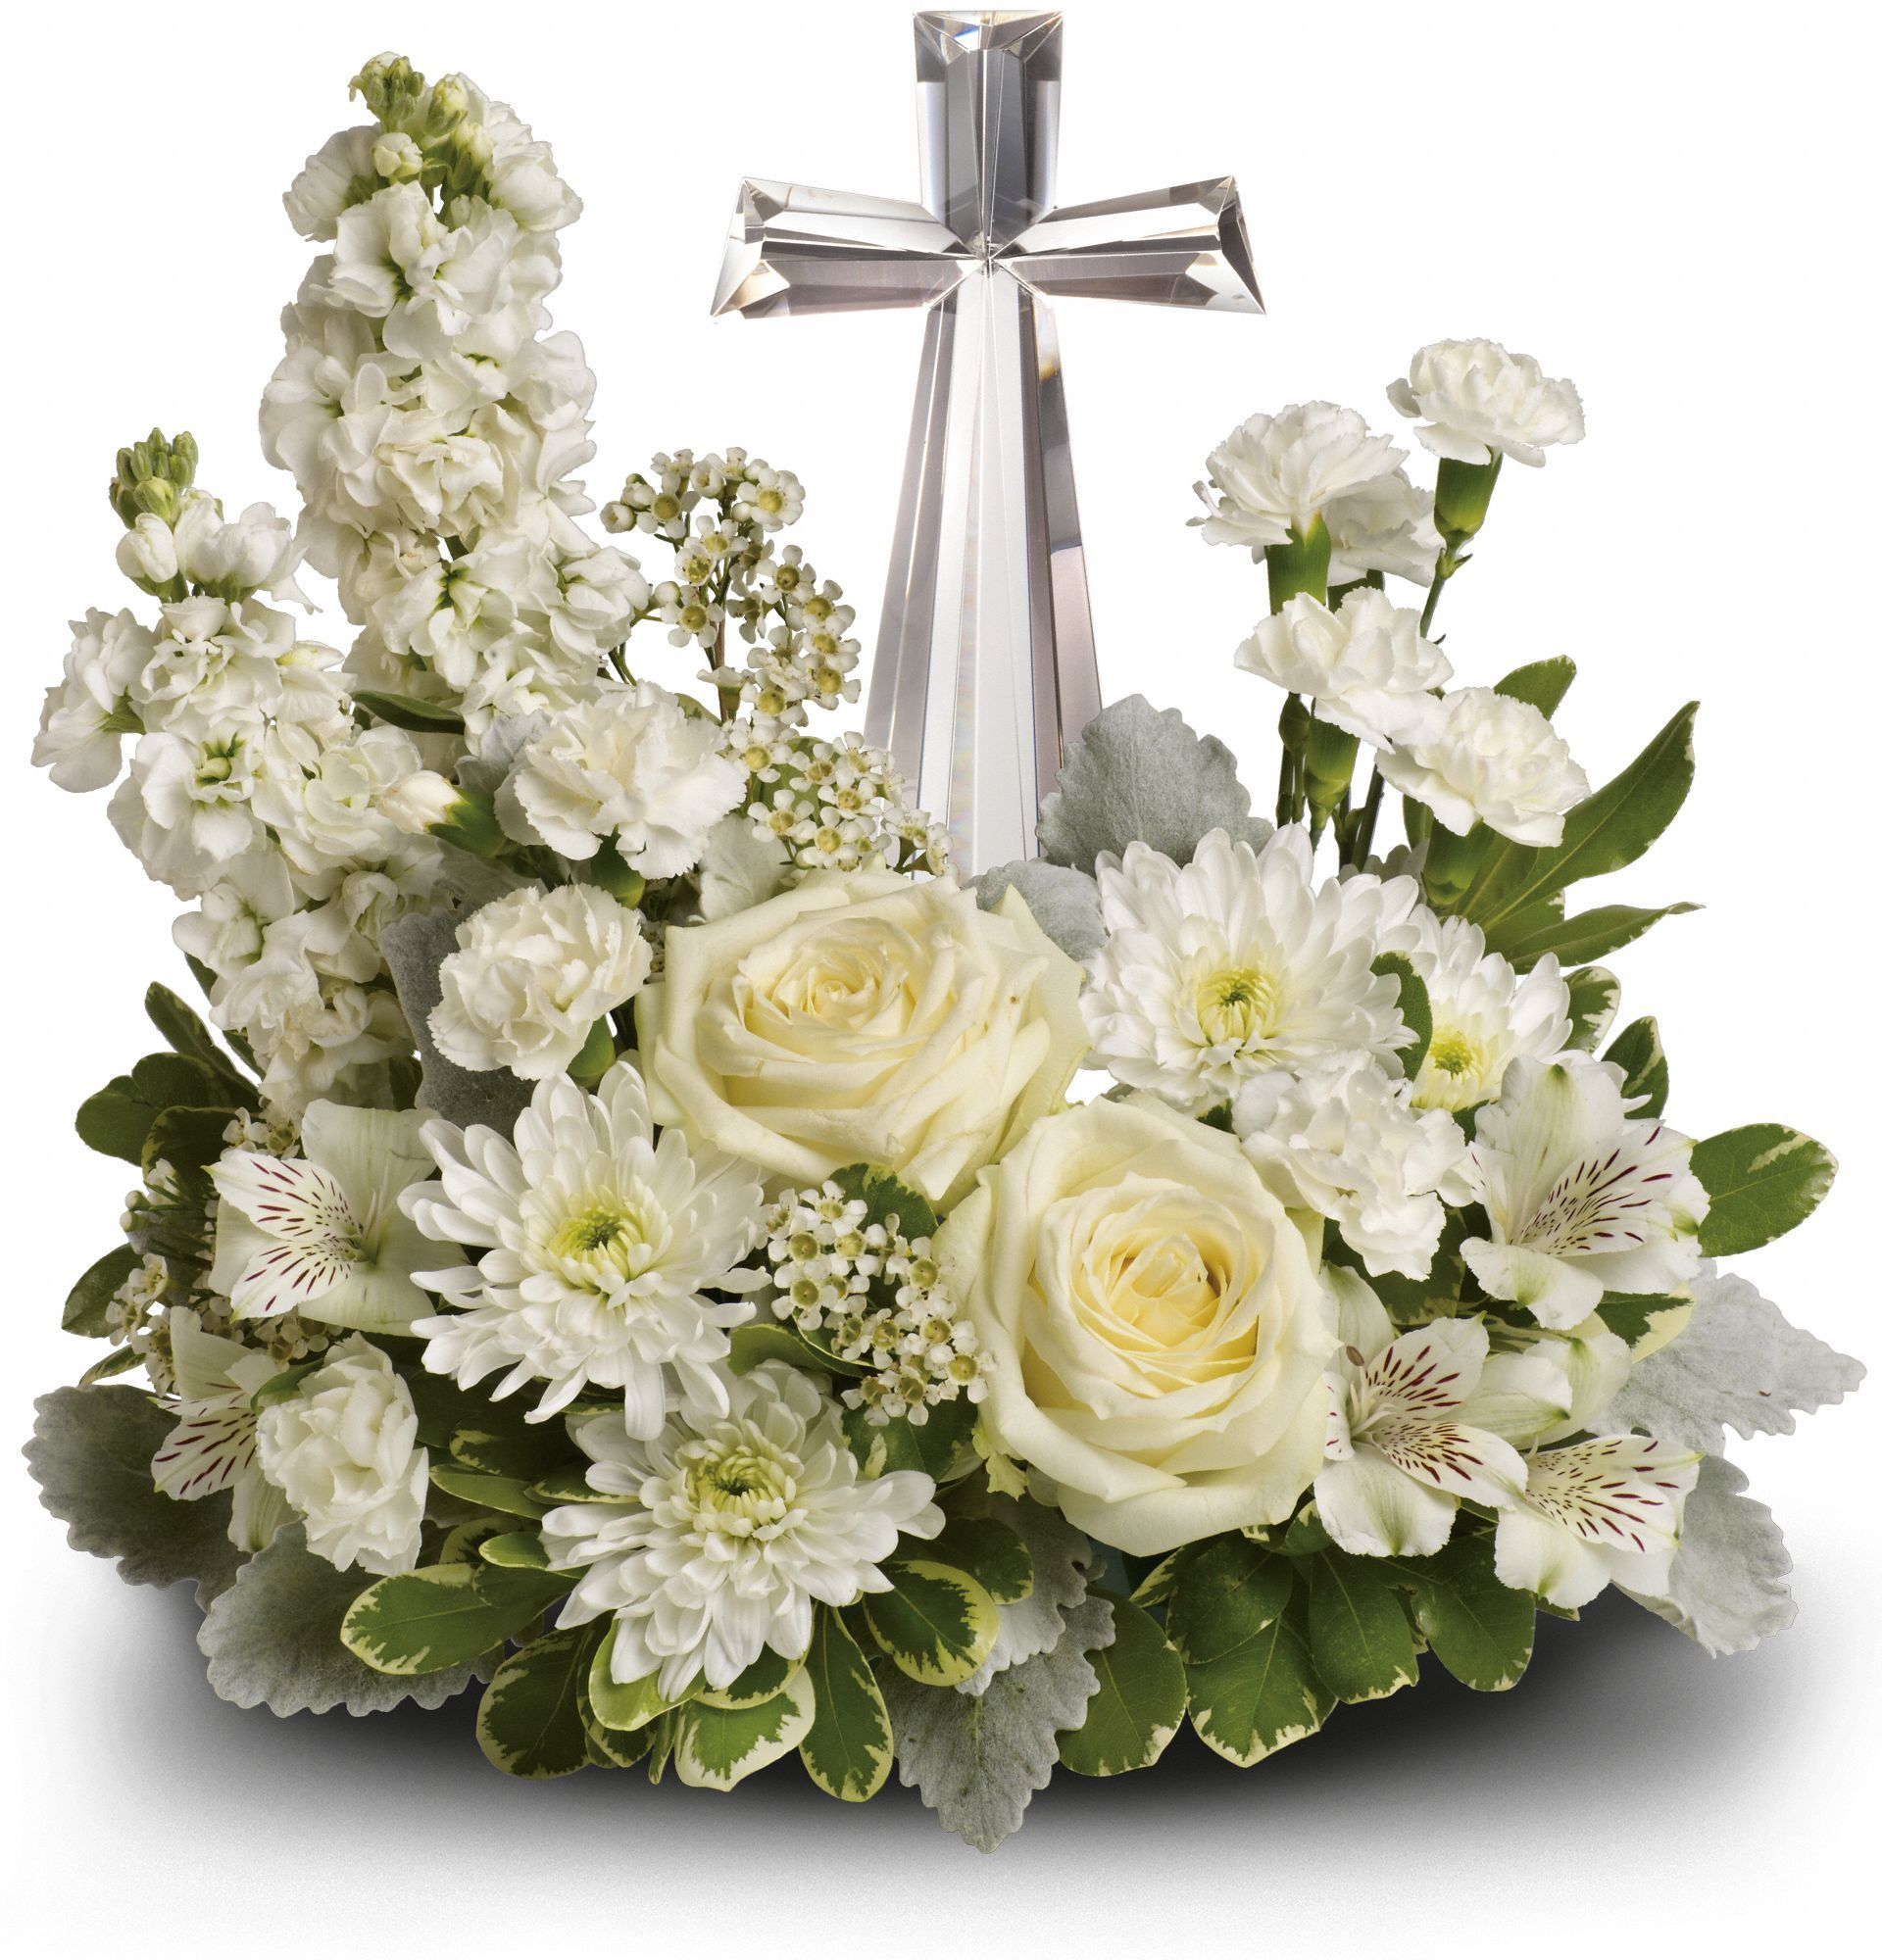 Lush white funeral flowers surround a beautiful crystal cross in lush white funeral flowers surround a beautiful crystal cross in this stunning all white funeral bouquet the christian arrangement is appropriate to send izmirmasajfo